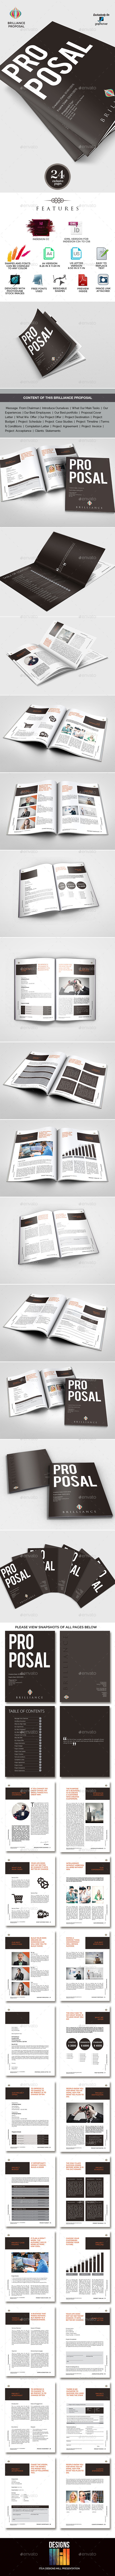 Brilliance Business Proposal Template - Proposals & Invoices Stationery